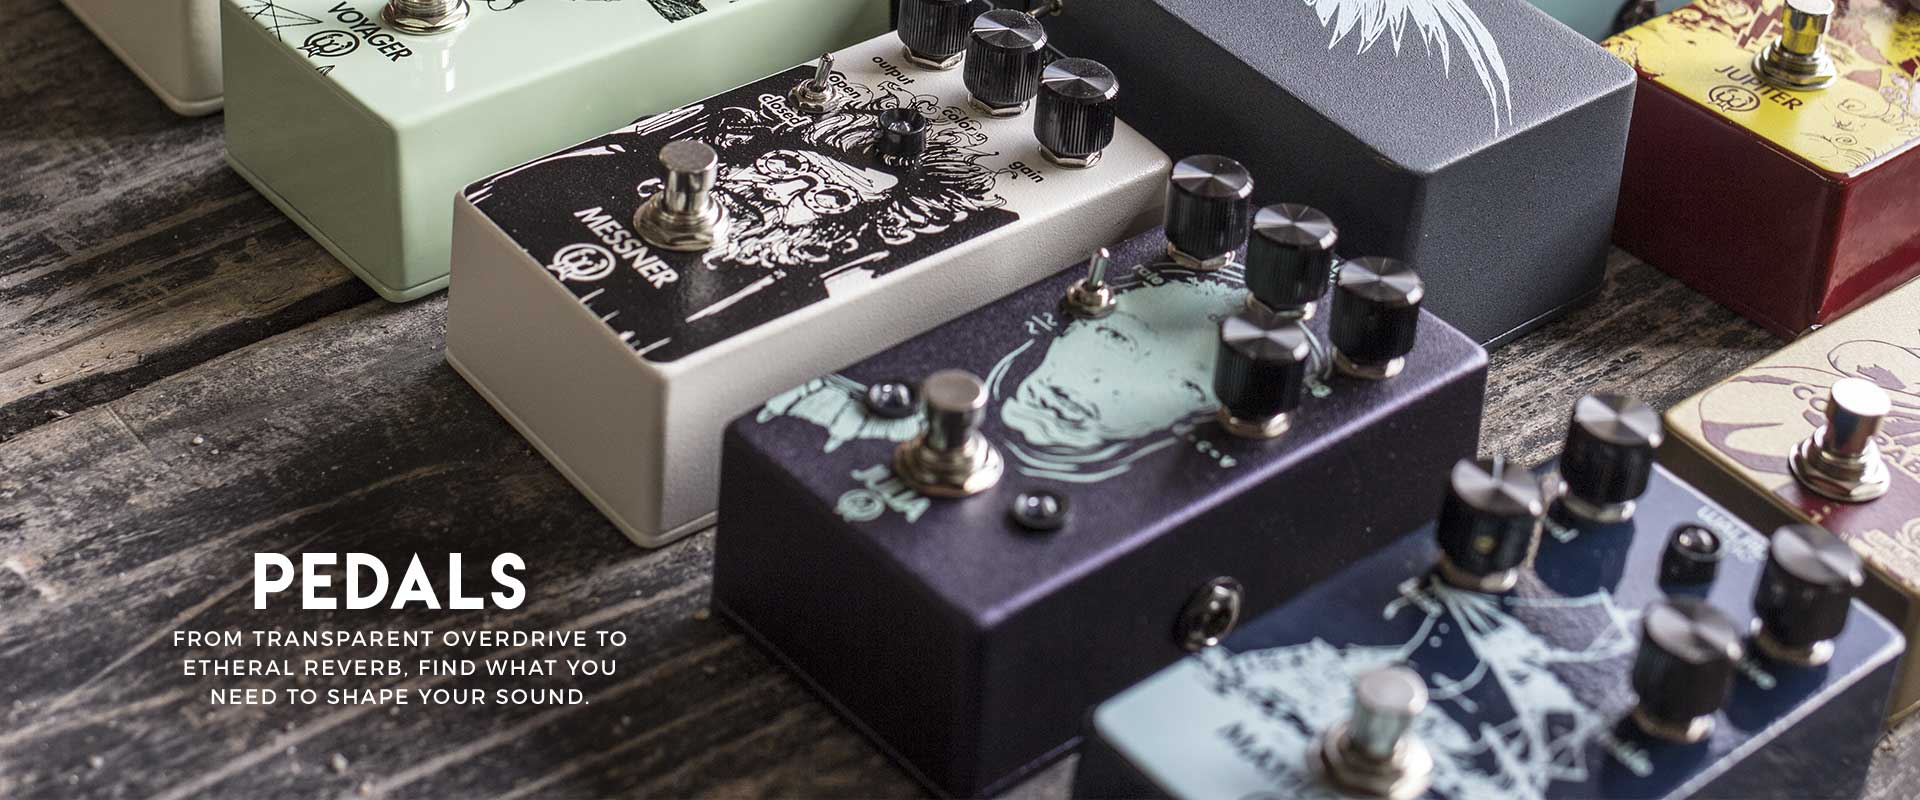 walrus audio pedals collection